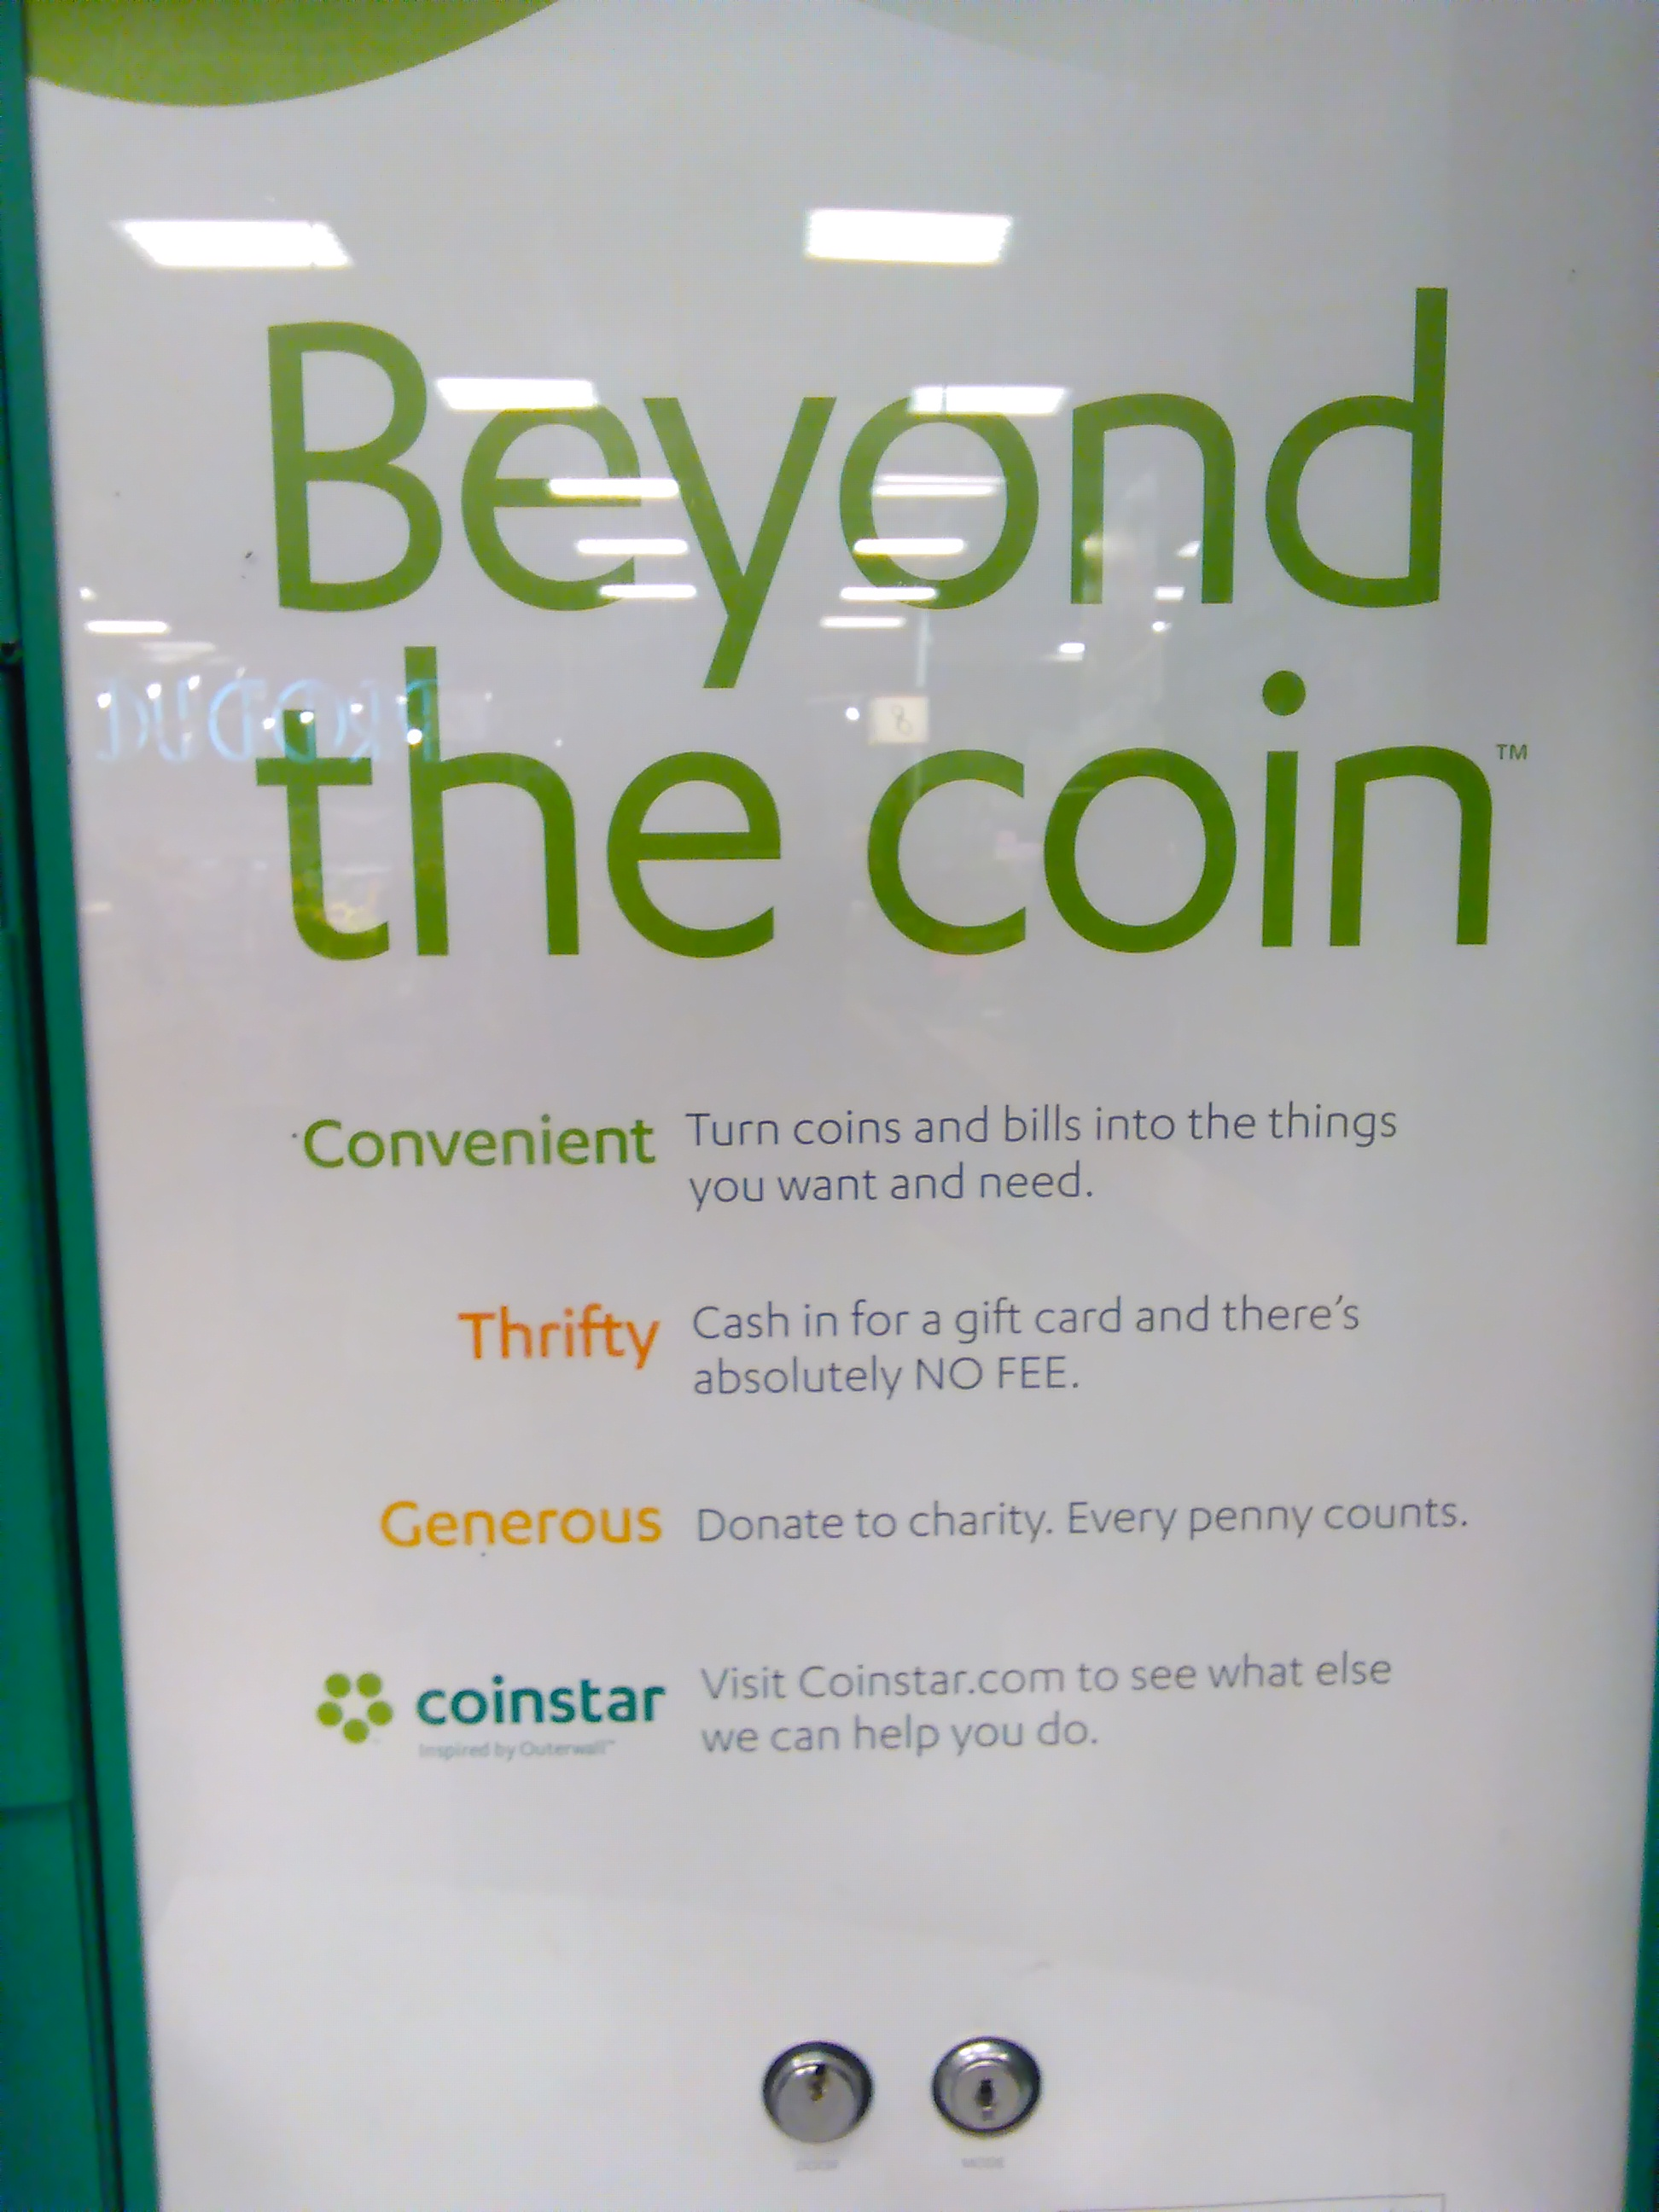 Top 10 Reviews of Coinstar